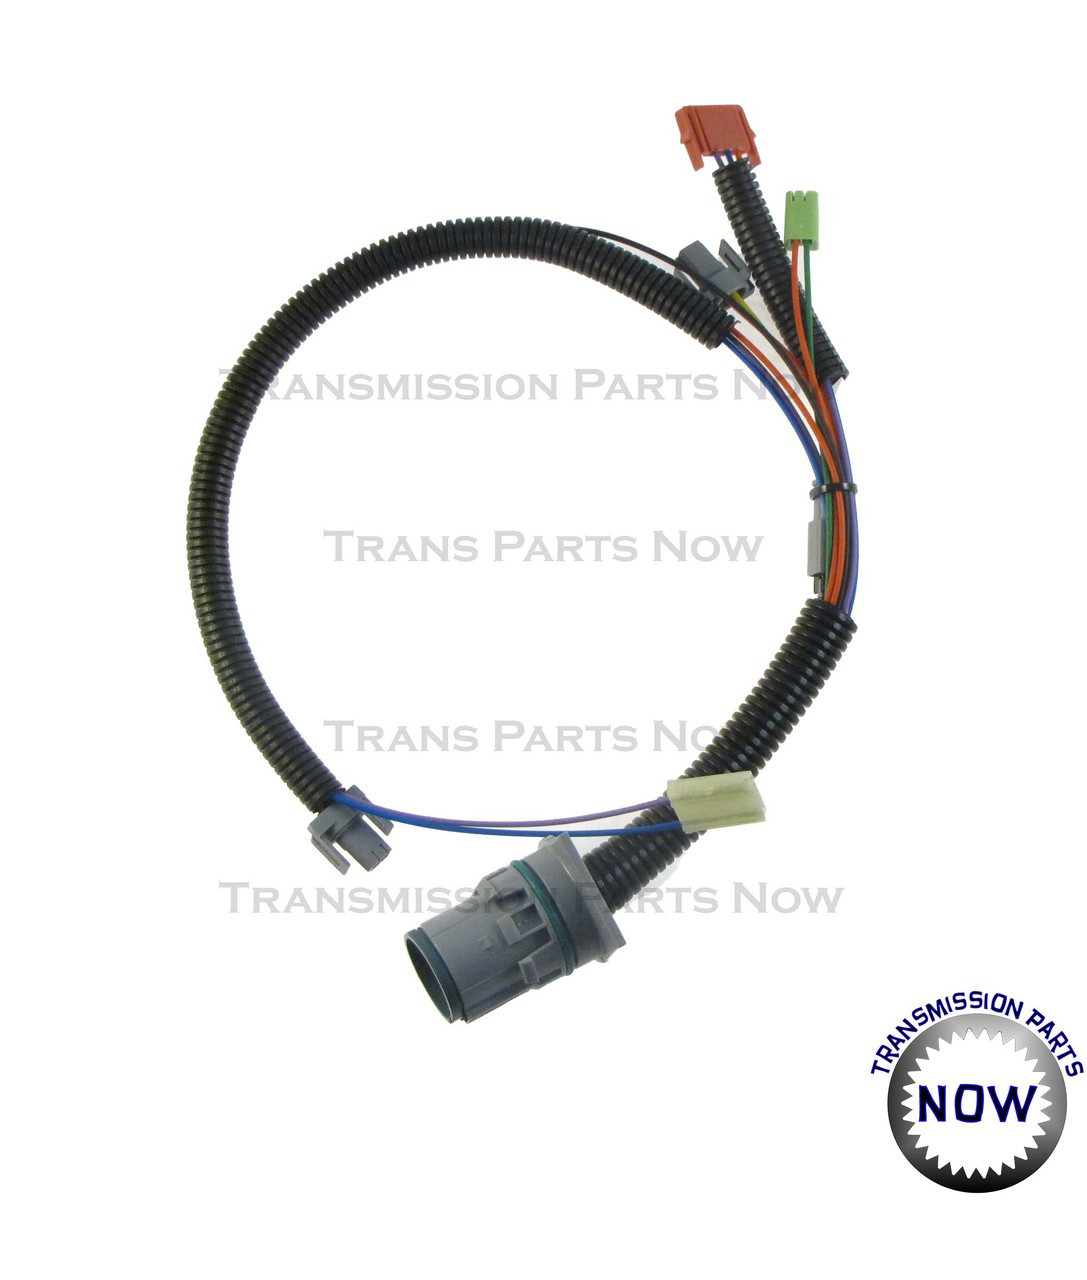 internal wiring harness 1991 2003, 34446, free shipping to the us 4R100 Transmission Diagram